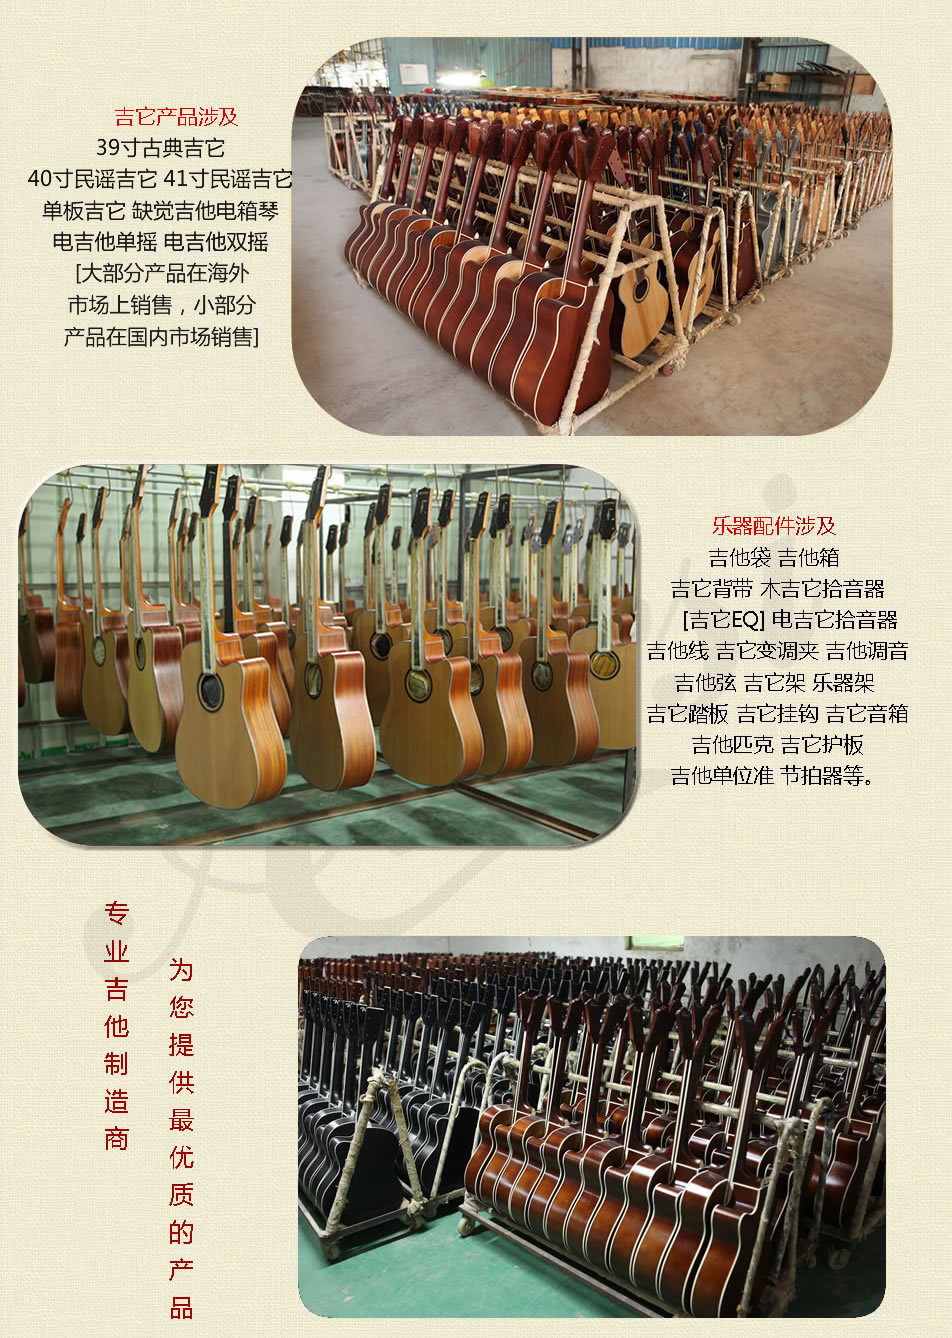 aiersi guitar factory (4)